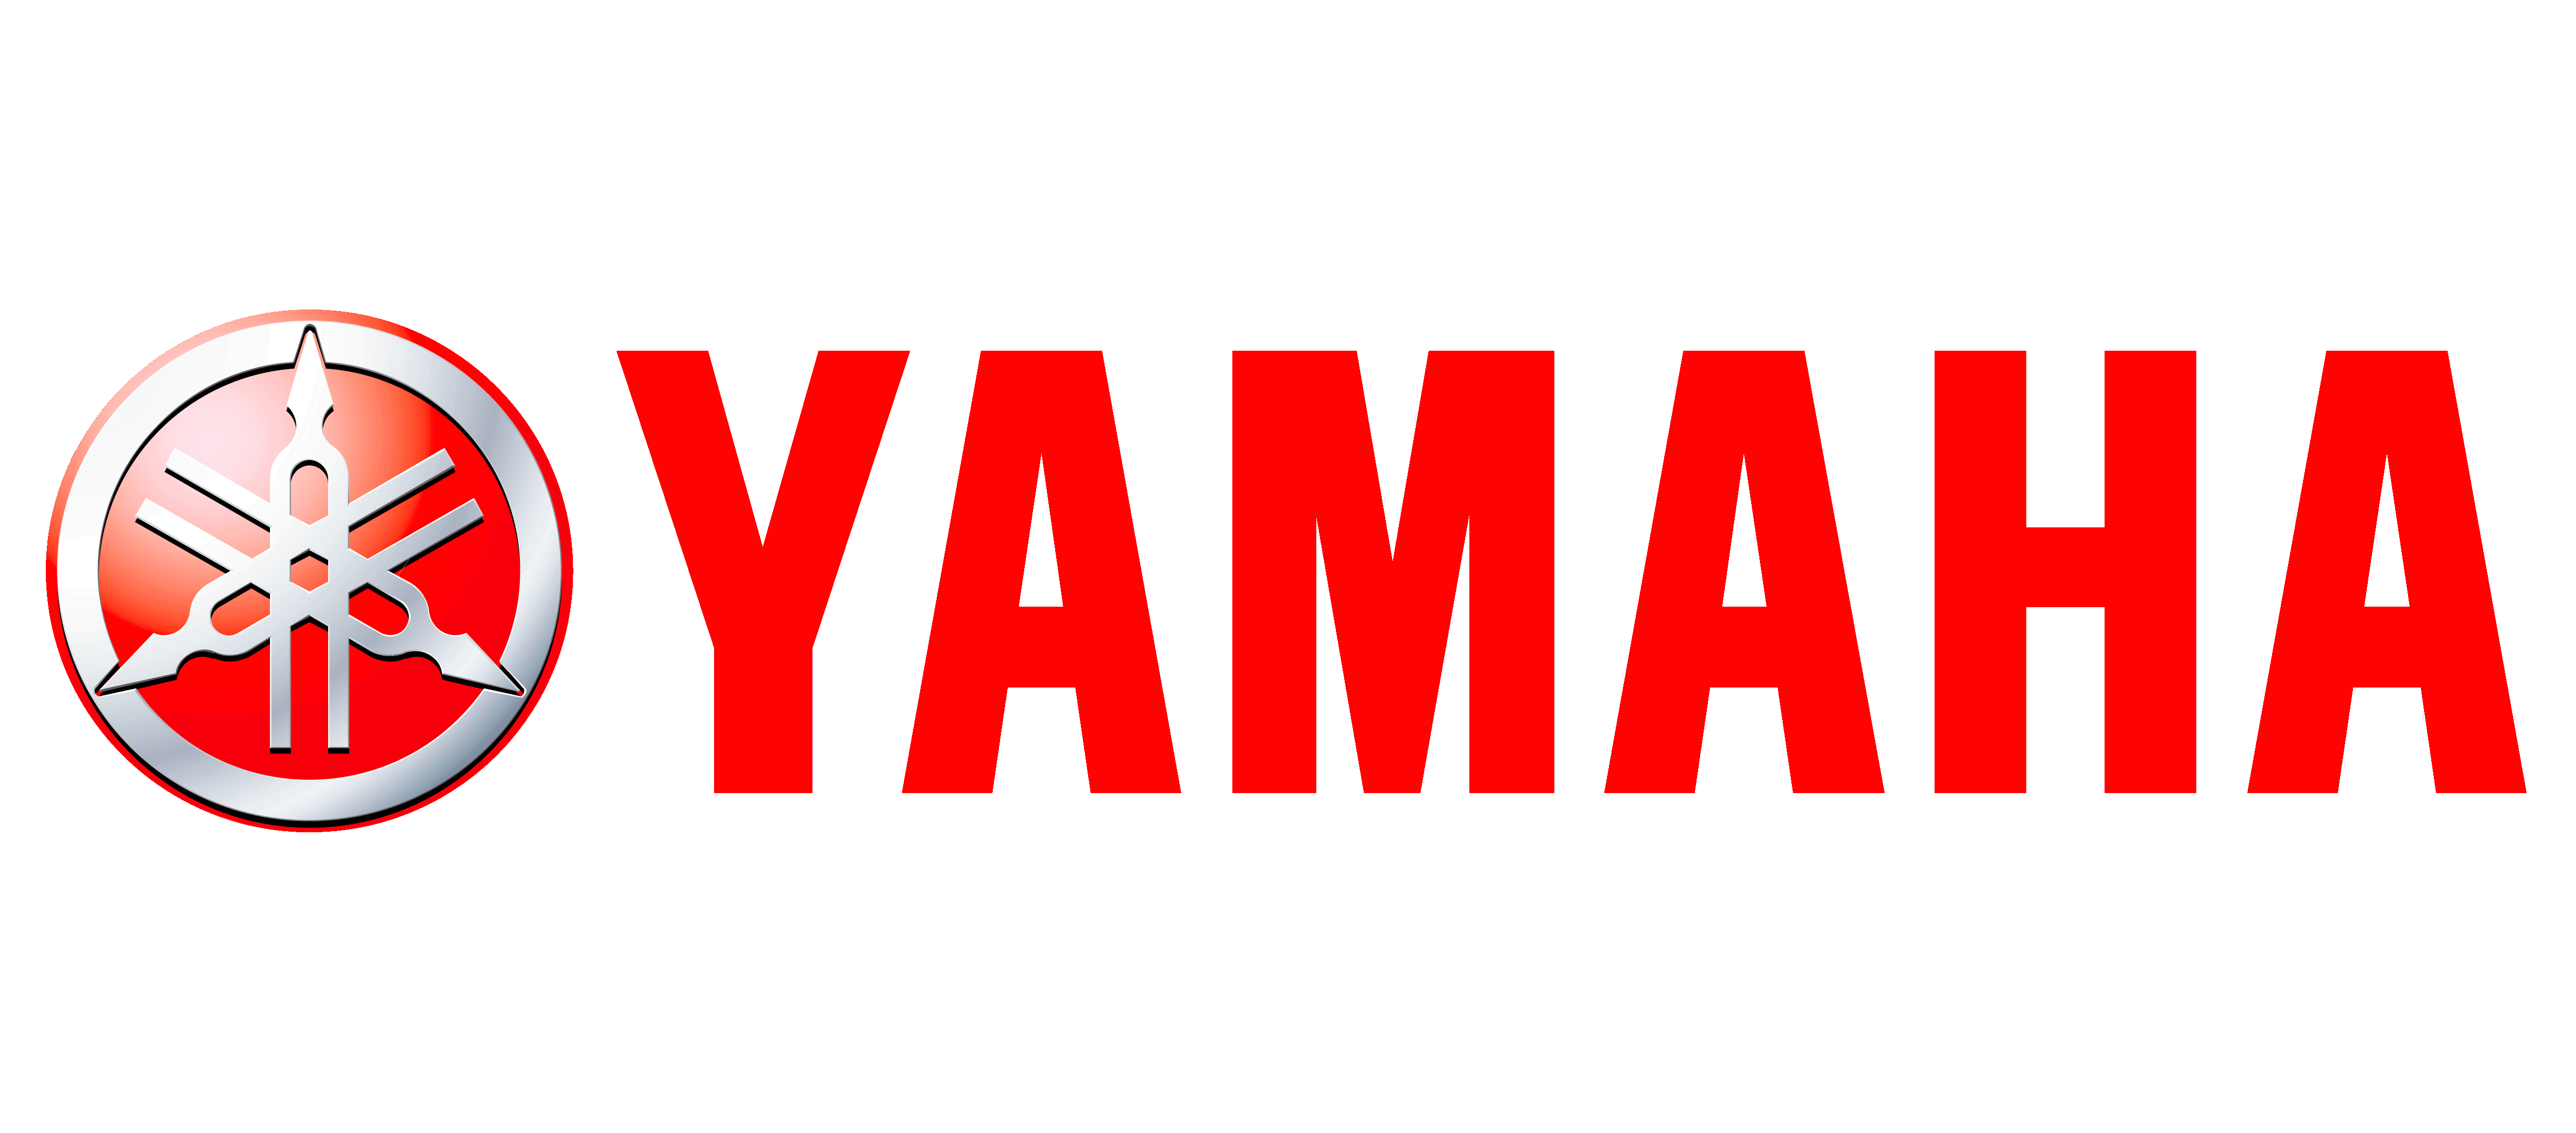 More about Yamaha